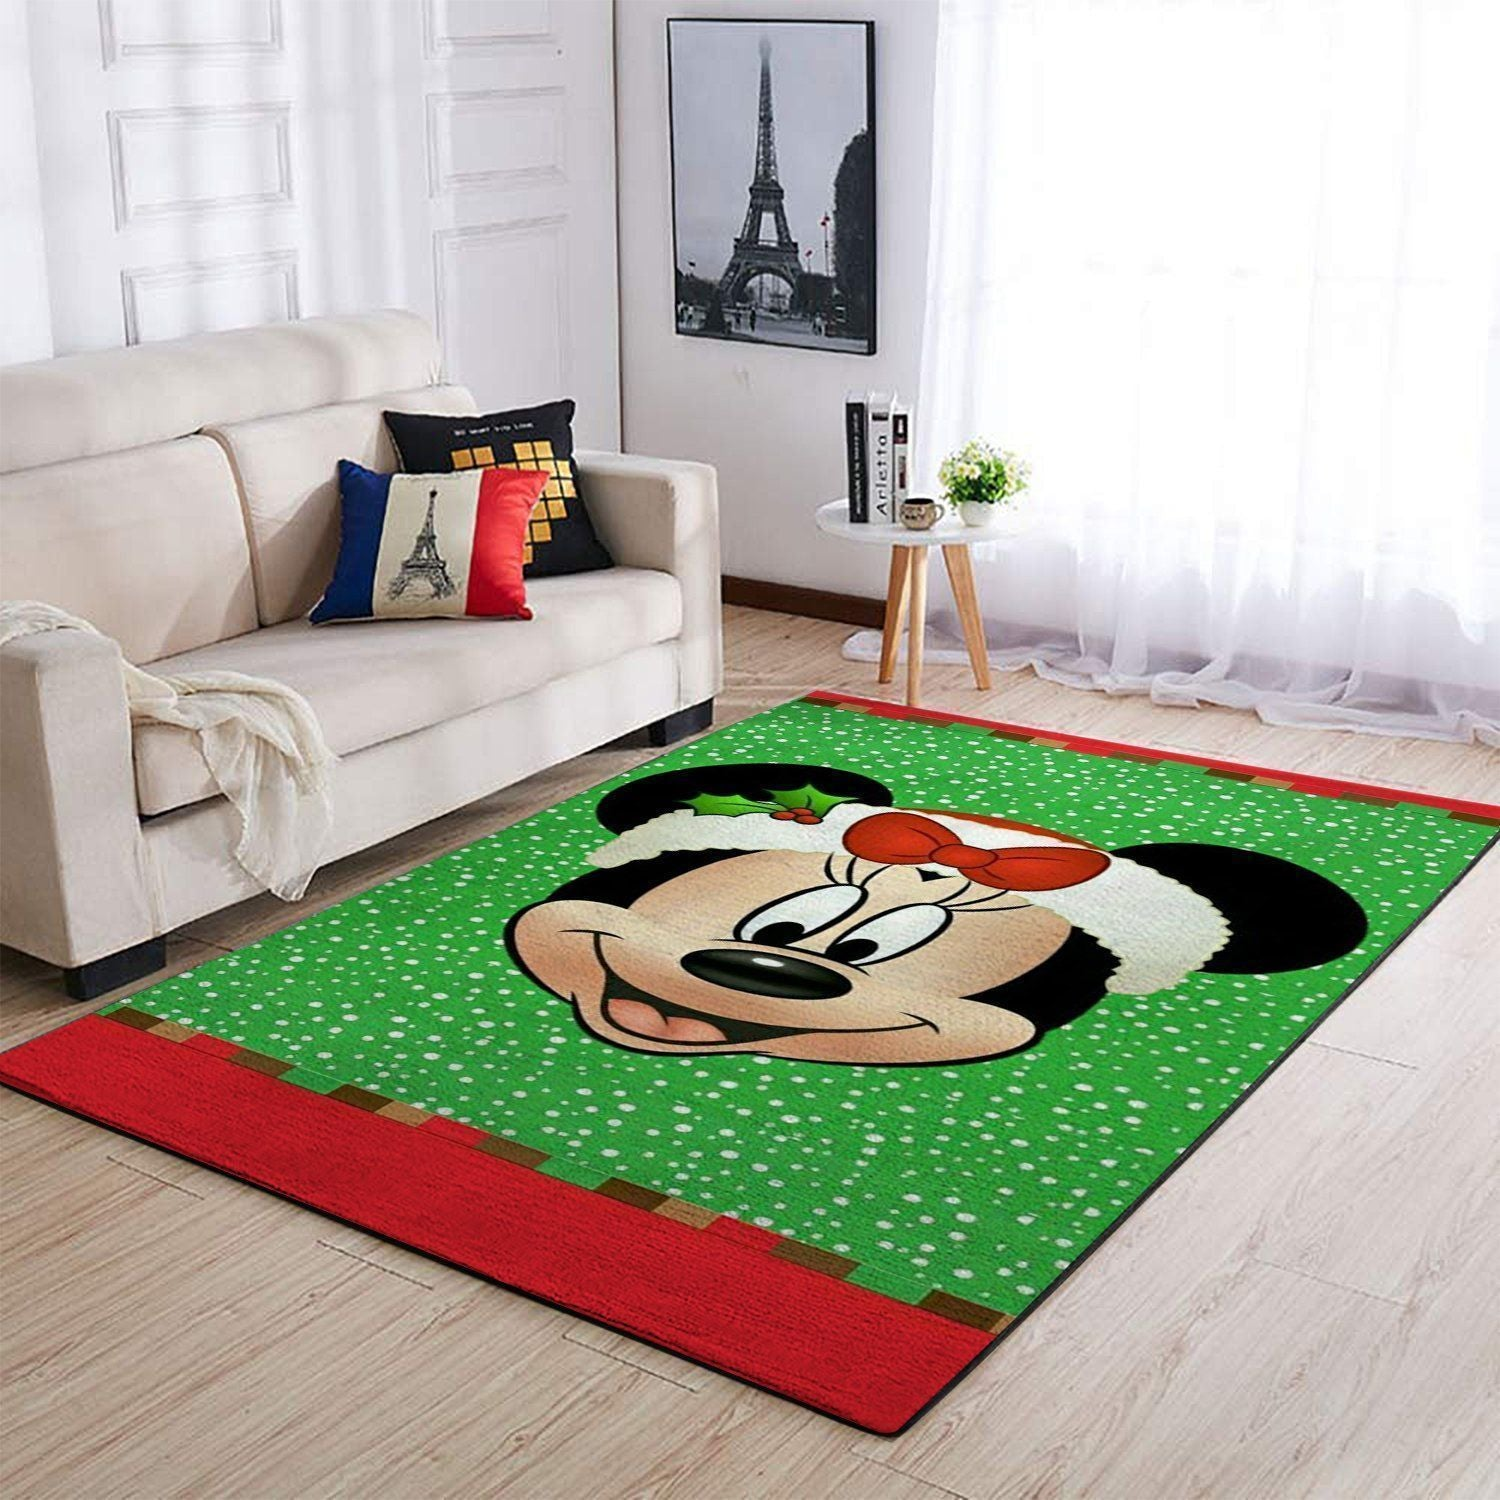 Mickey Mouse Area Rugs / Christmas Disney Movie Living Room Carpet, Custom Floor Decor 1909278